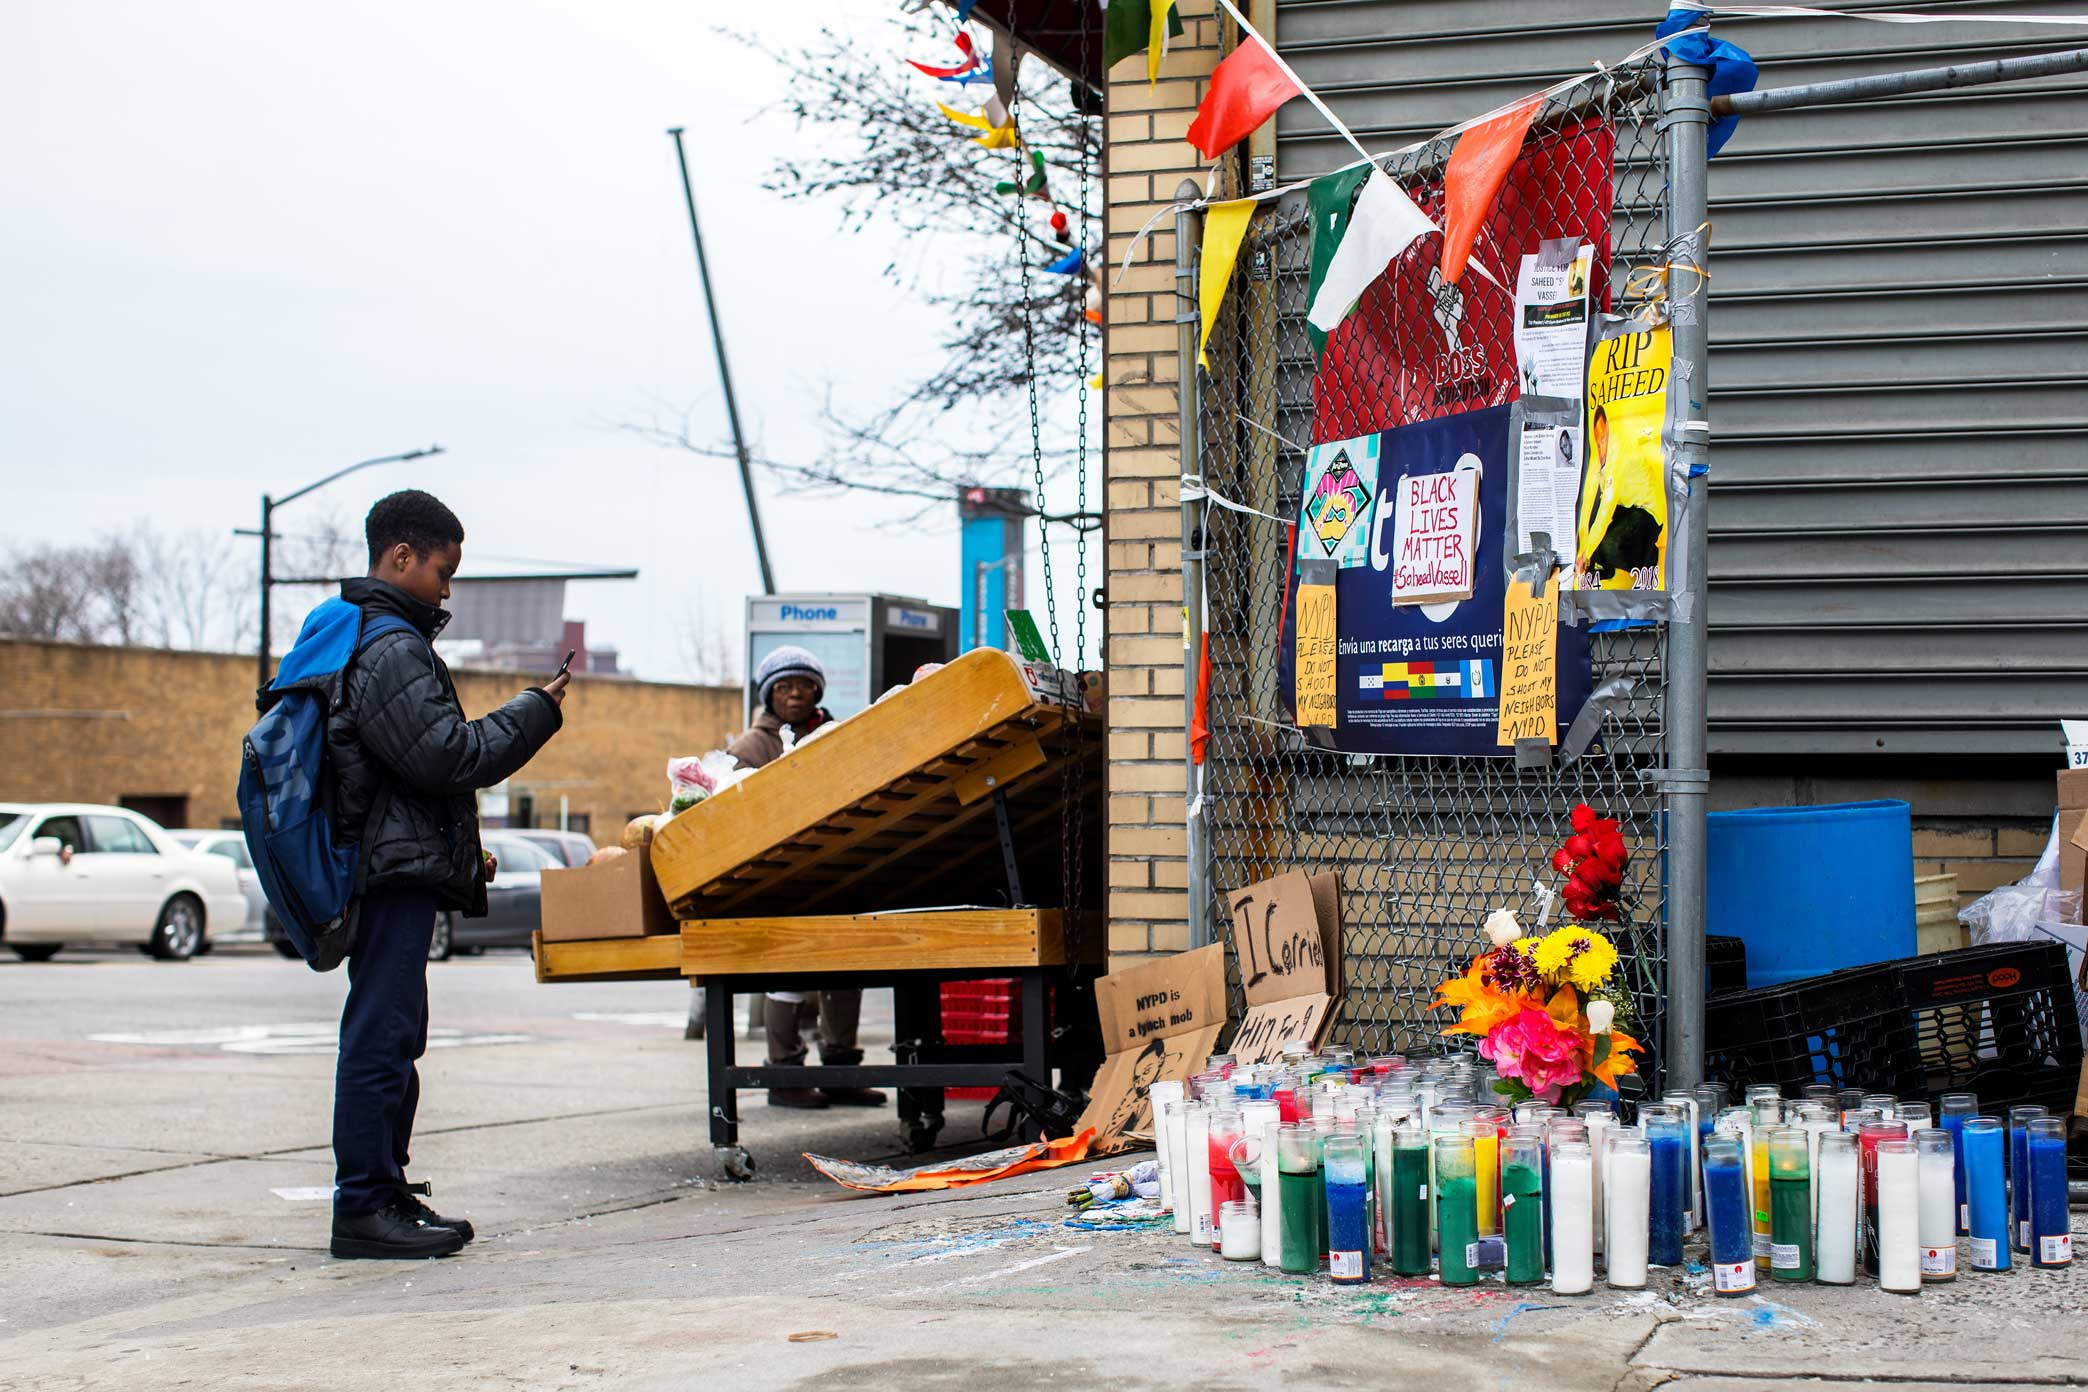 A young boy takes a photo of the memorial site for Saheed Vassell in Crown Heights, Brooklyn. Broken glass remain scattered on the ground where Saheed was shot.    The New York Times Story Link:   A Father Asks, 'Why Did They Have to Just Kill Him?'    Police Release First Details of Officers Who Shot Man in Brooklyn    Locals Knew He Was Mentally Ill. The Officers Who Shot Him Did Not.